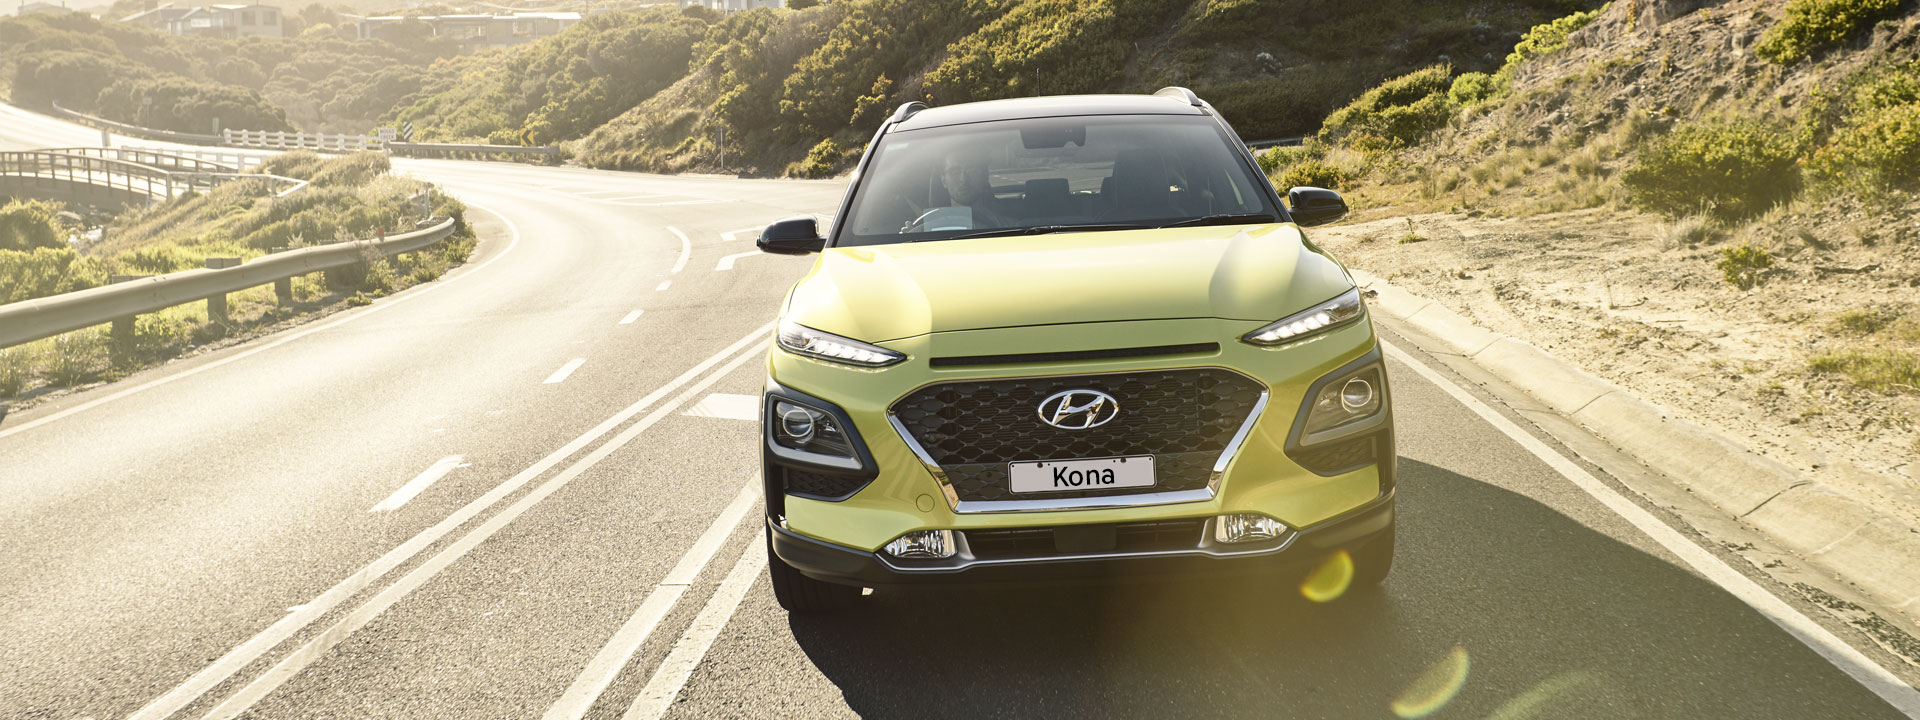 Kona wins 2020 Drive Small SUV of the year.